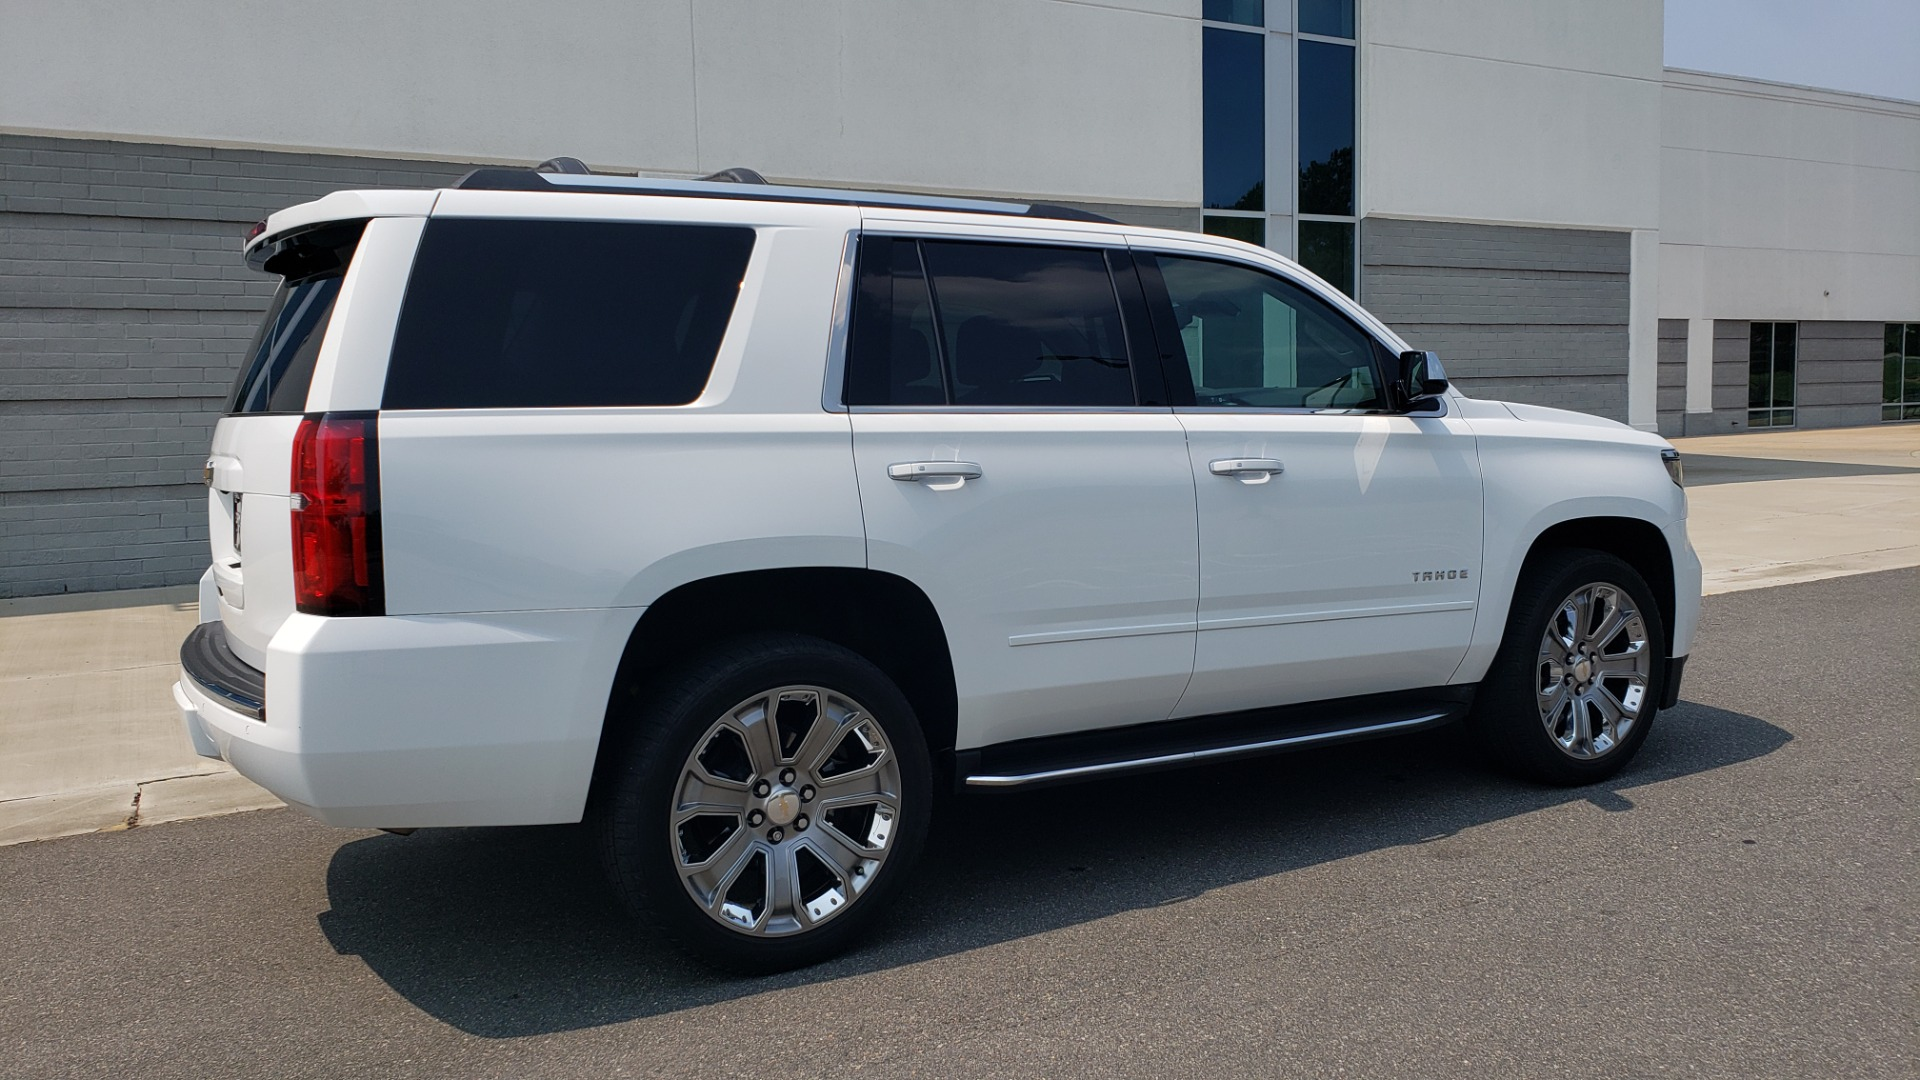 Used 2018 Chevrolet TAHOE PREMIER 4WD / NAV / SUNROOF / BOSE / 3-ROW / HUD / REARVIEW for sale $63,995 at Formula Imports in Charlotte NC 28227 5